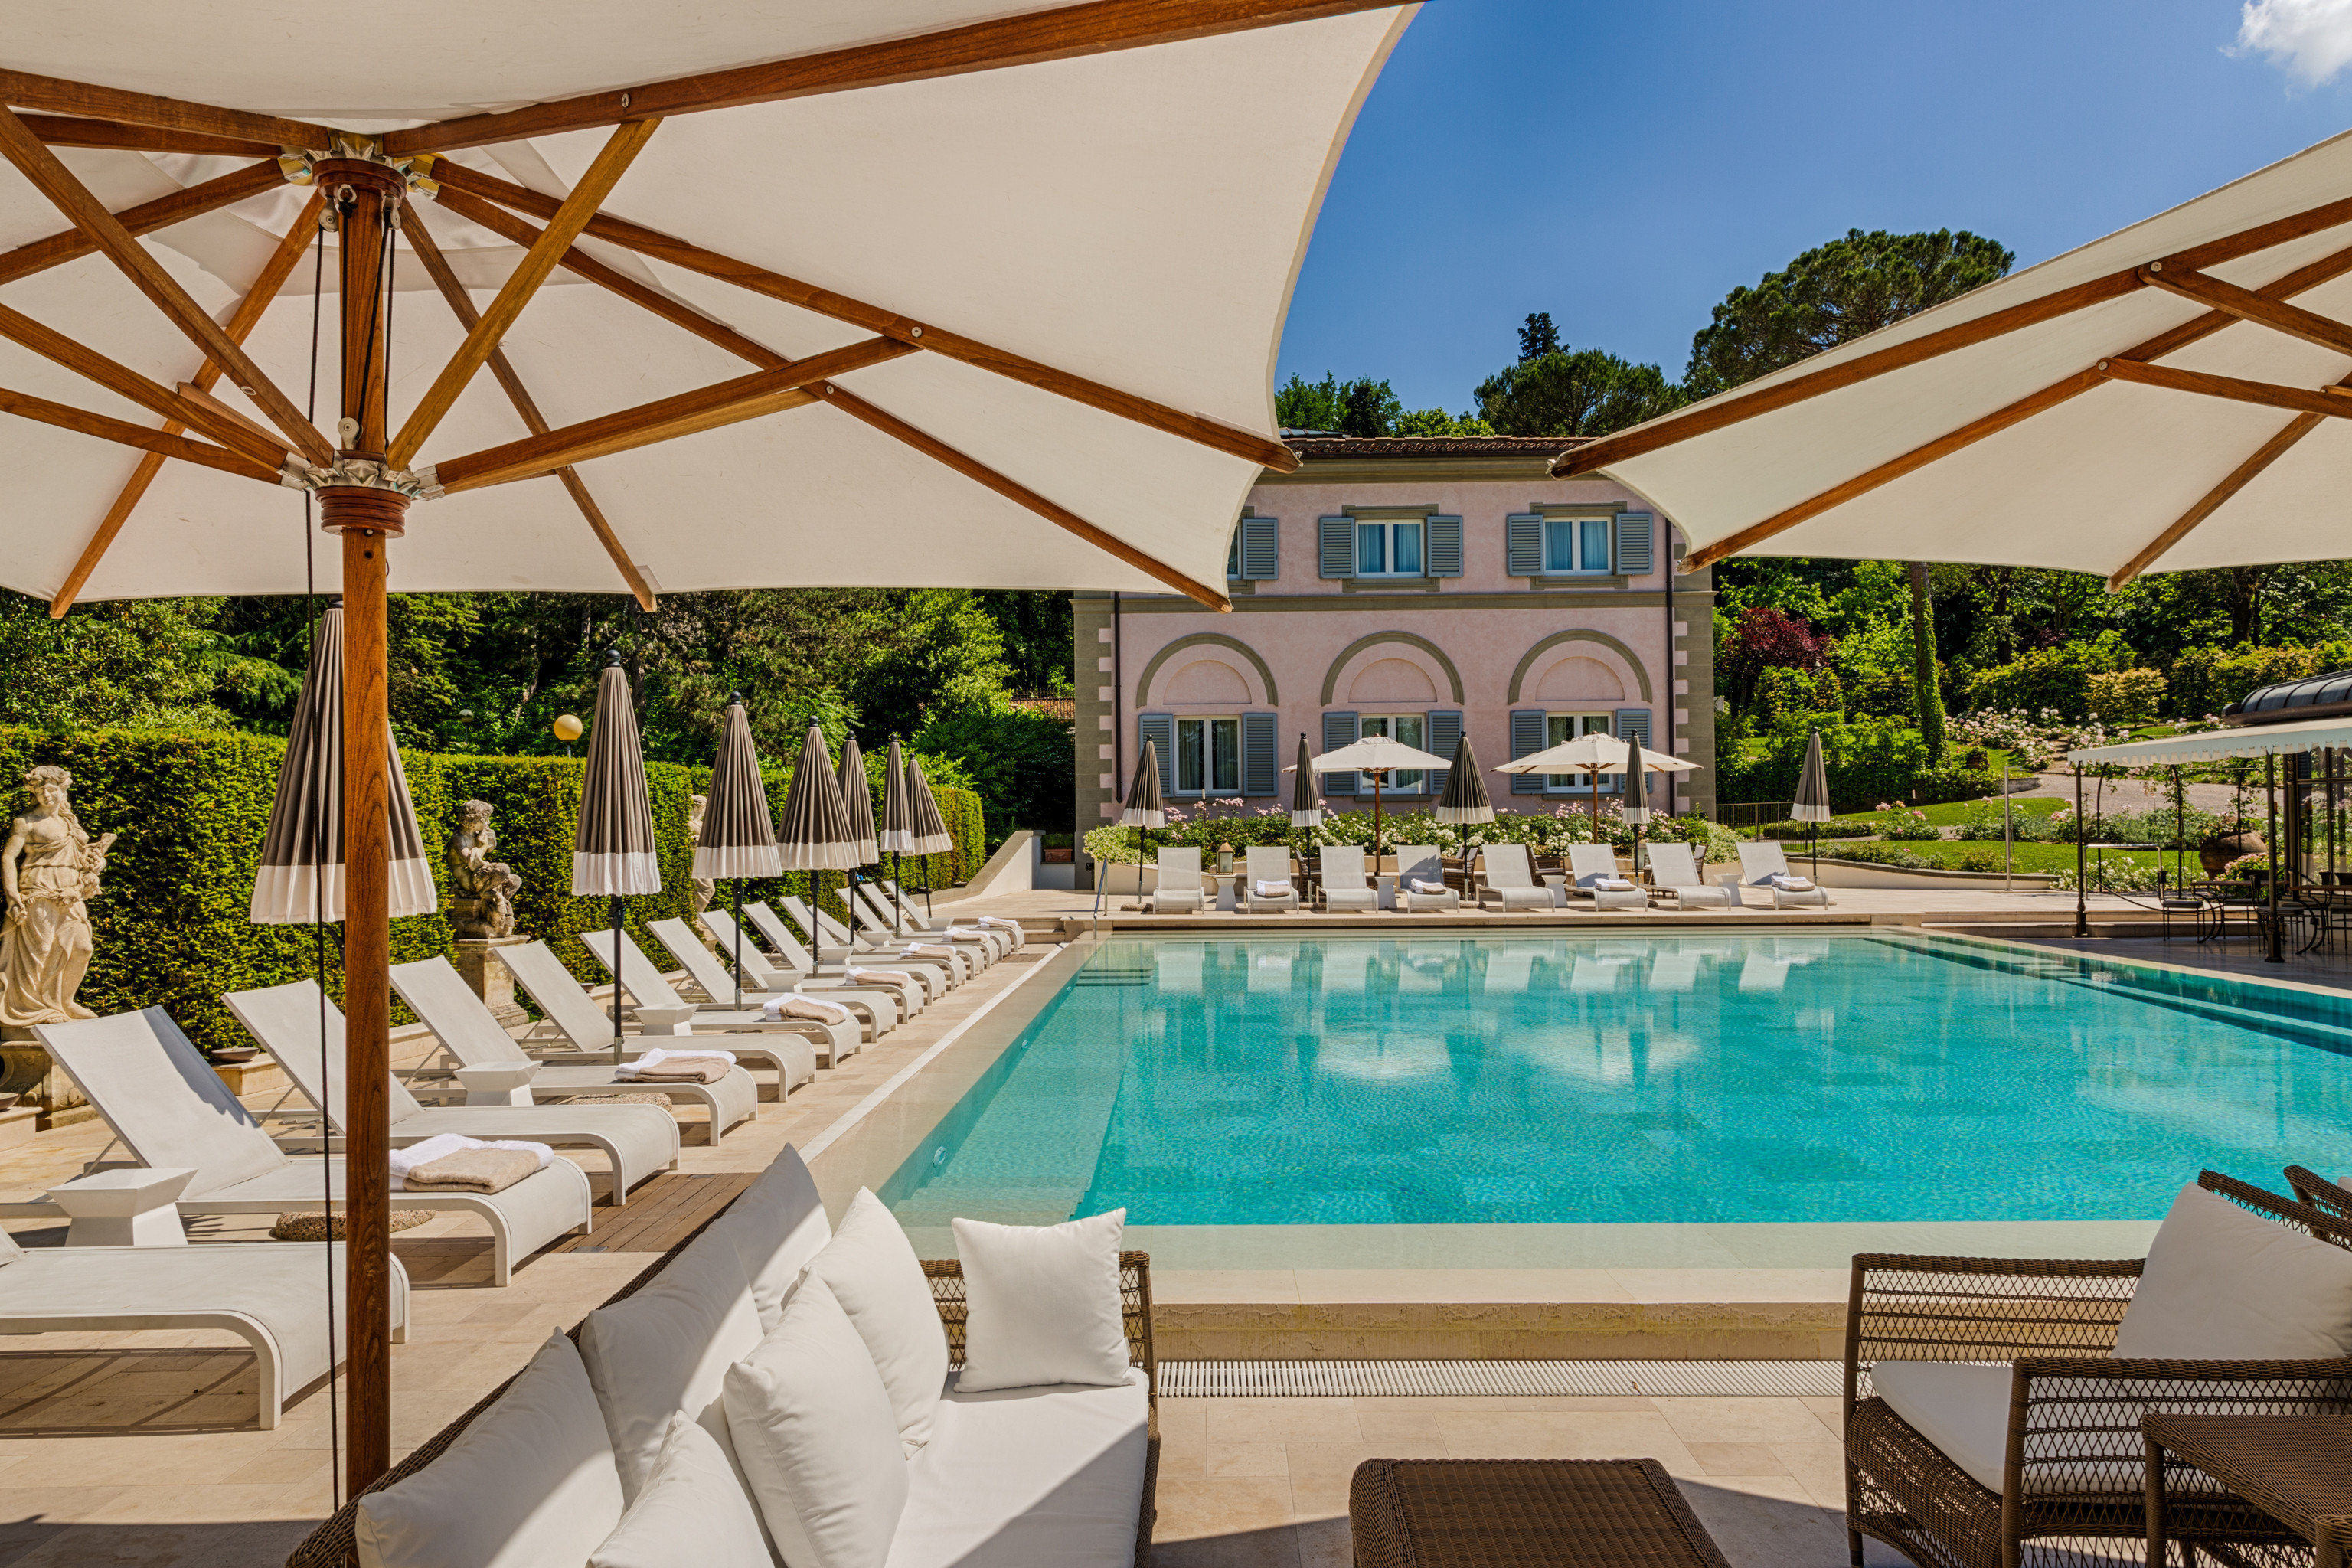 Florence Hotels Italy outdoor sky table swimming pool building leisure property Resort estate Villa vacation backyard hacienda real estate eco hotel outdoor structure furniture